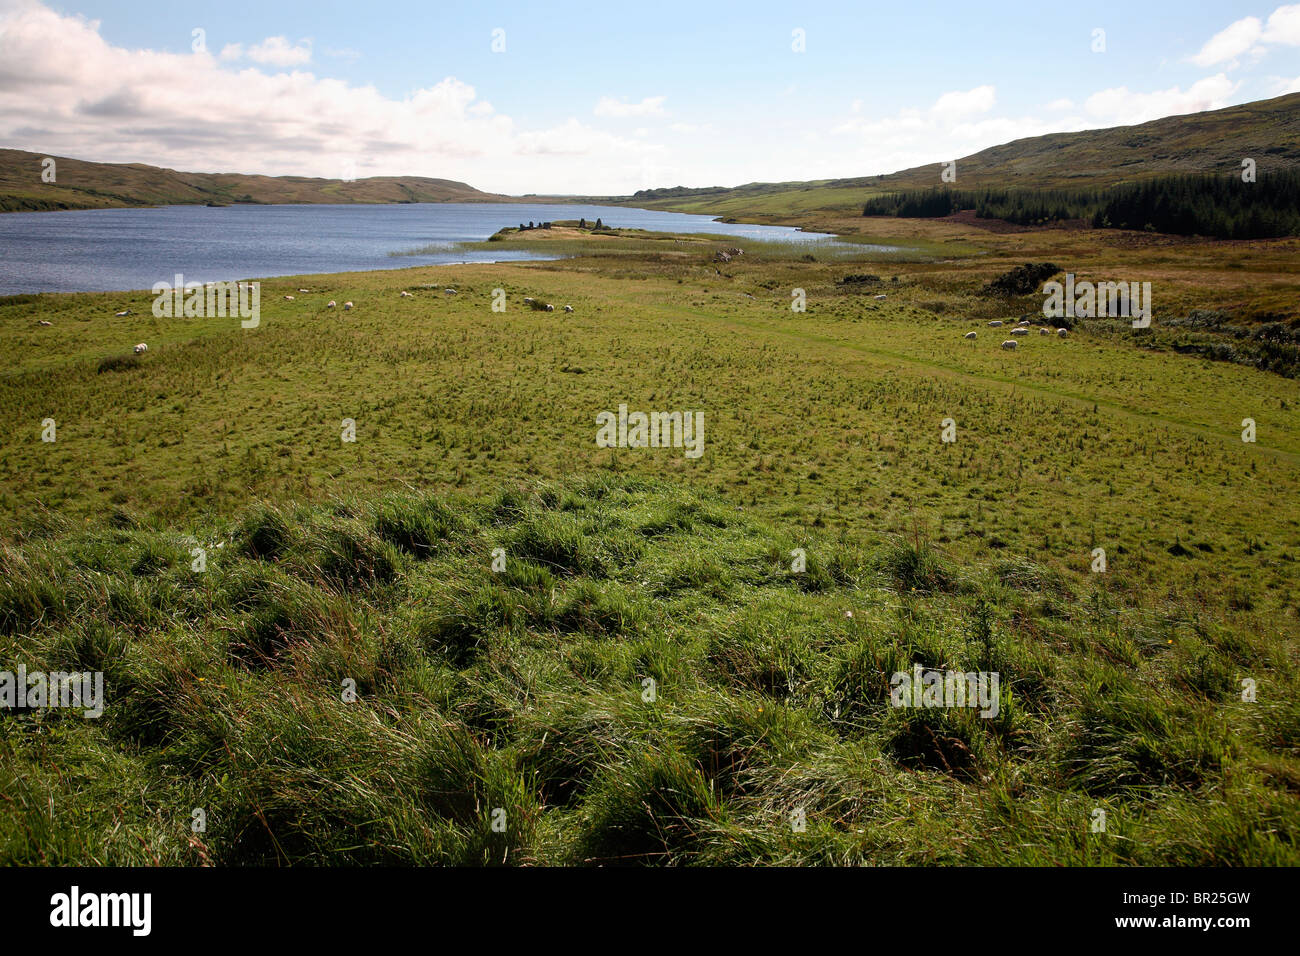 Scotland Islay Loch Finlaggan Stock Photo